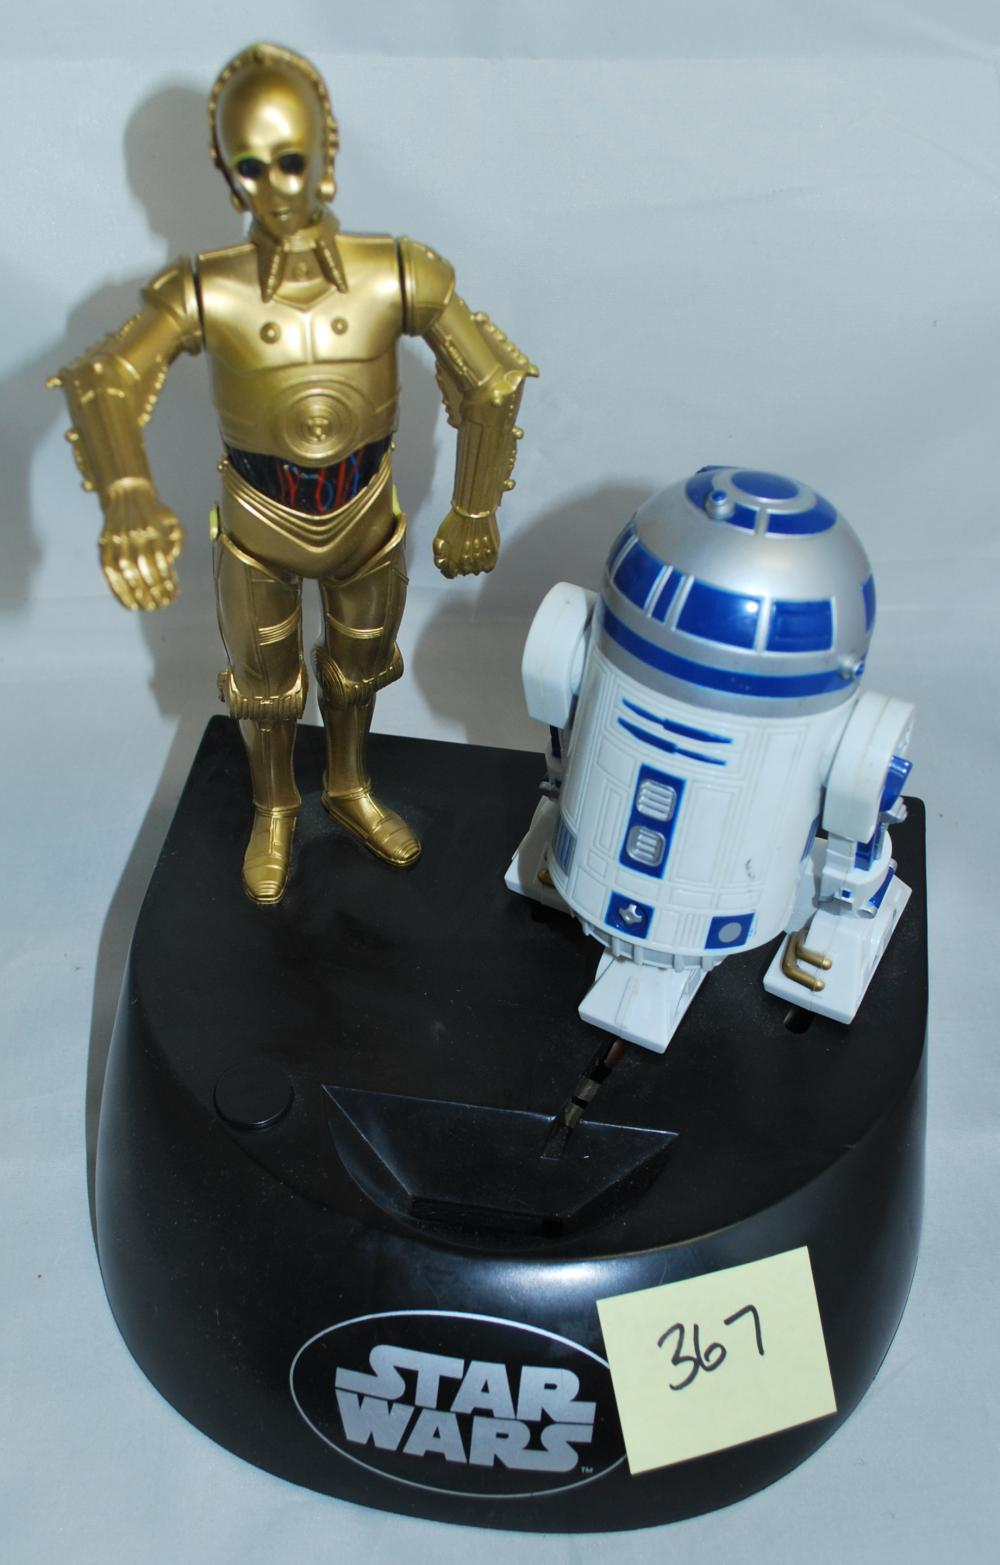 Star Wars R2-D2 & C-3PO Animated Coin Bank